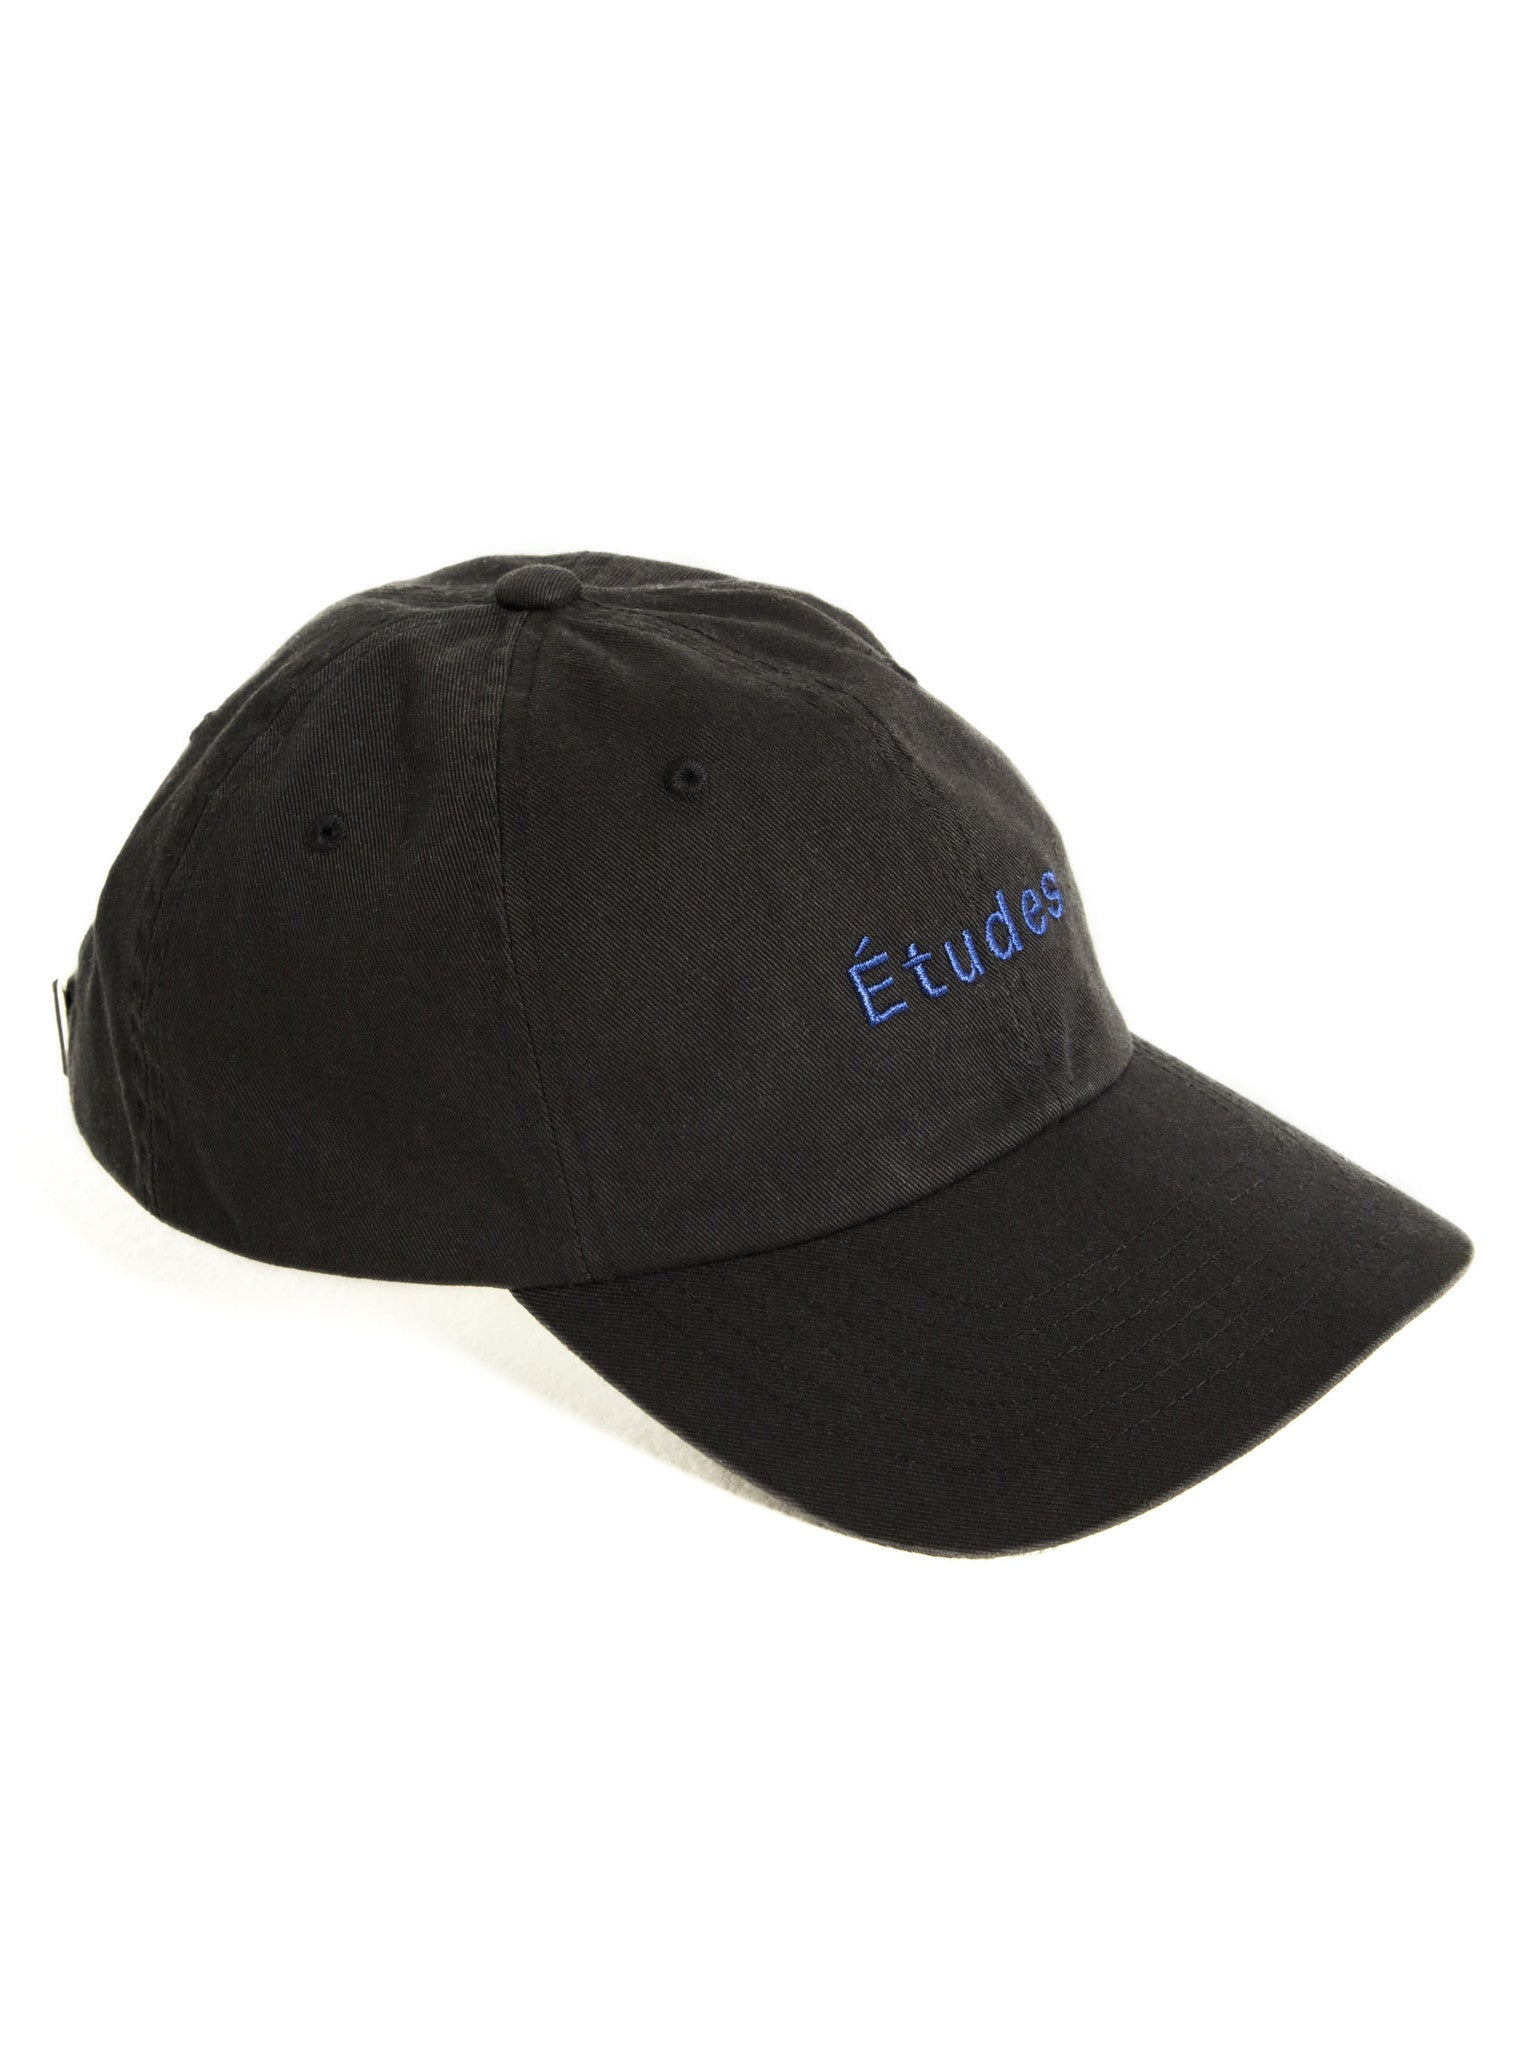 Études Studio - Still Black Cap